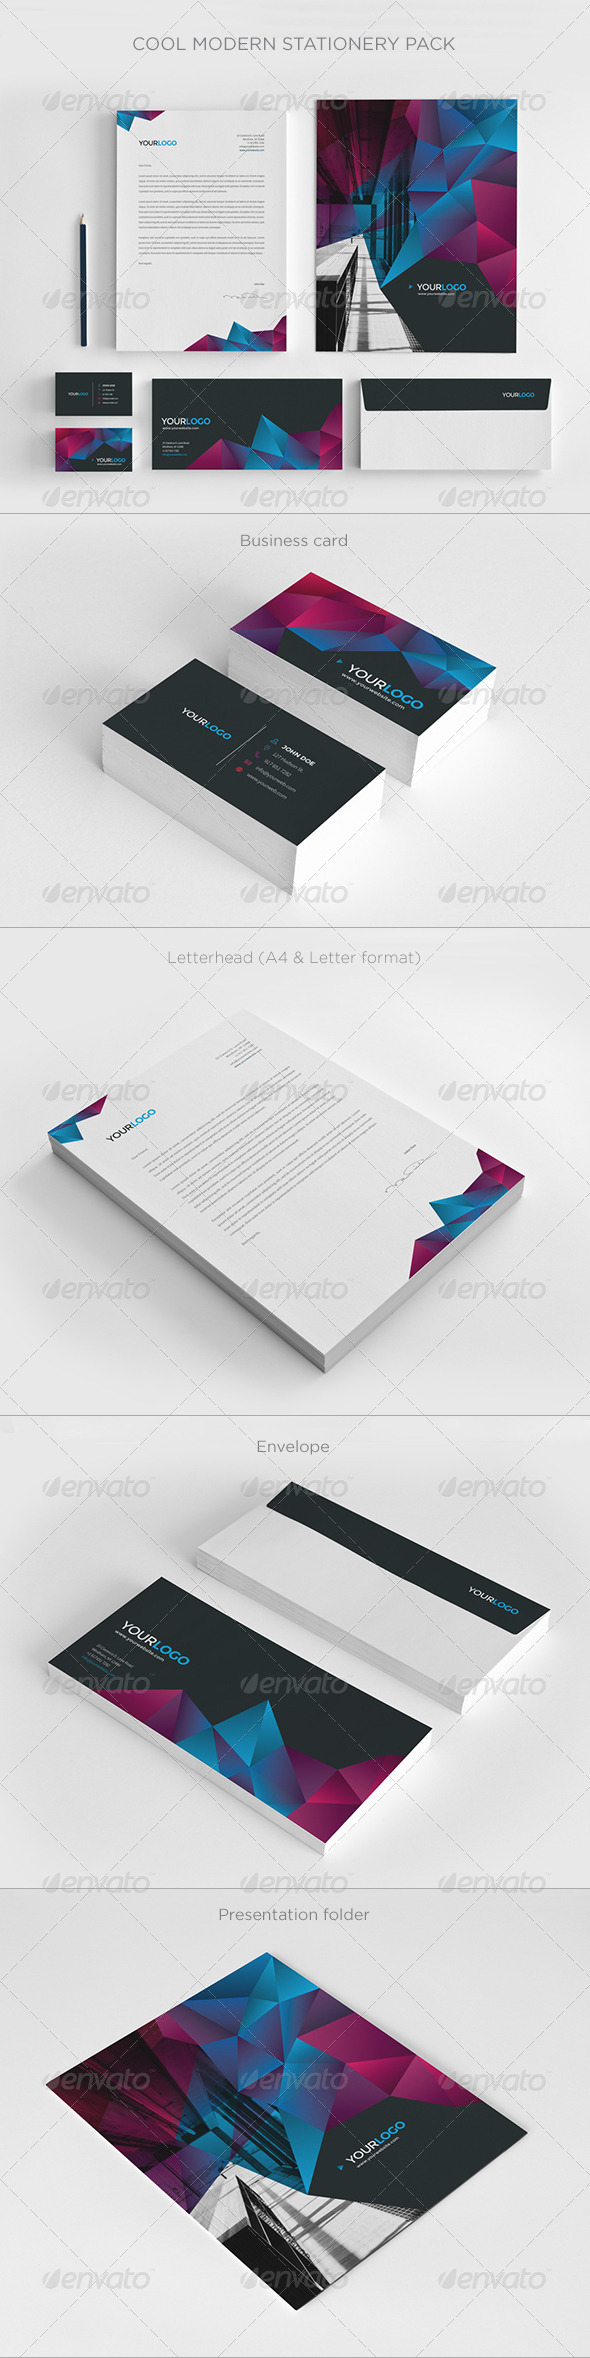 GraphicRiver Cool Modern Stationery Pack 7765998